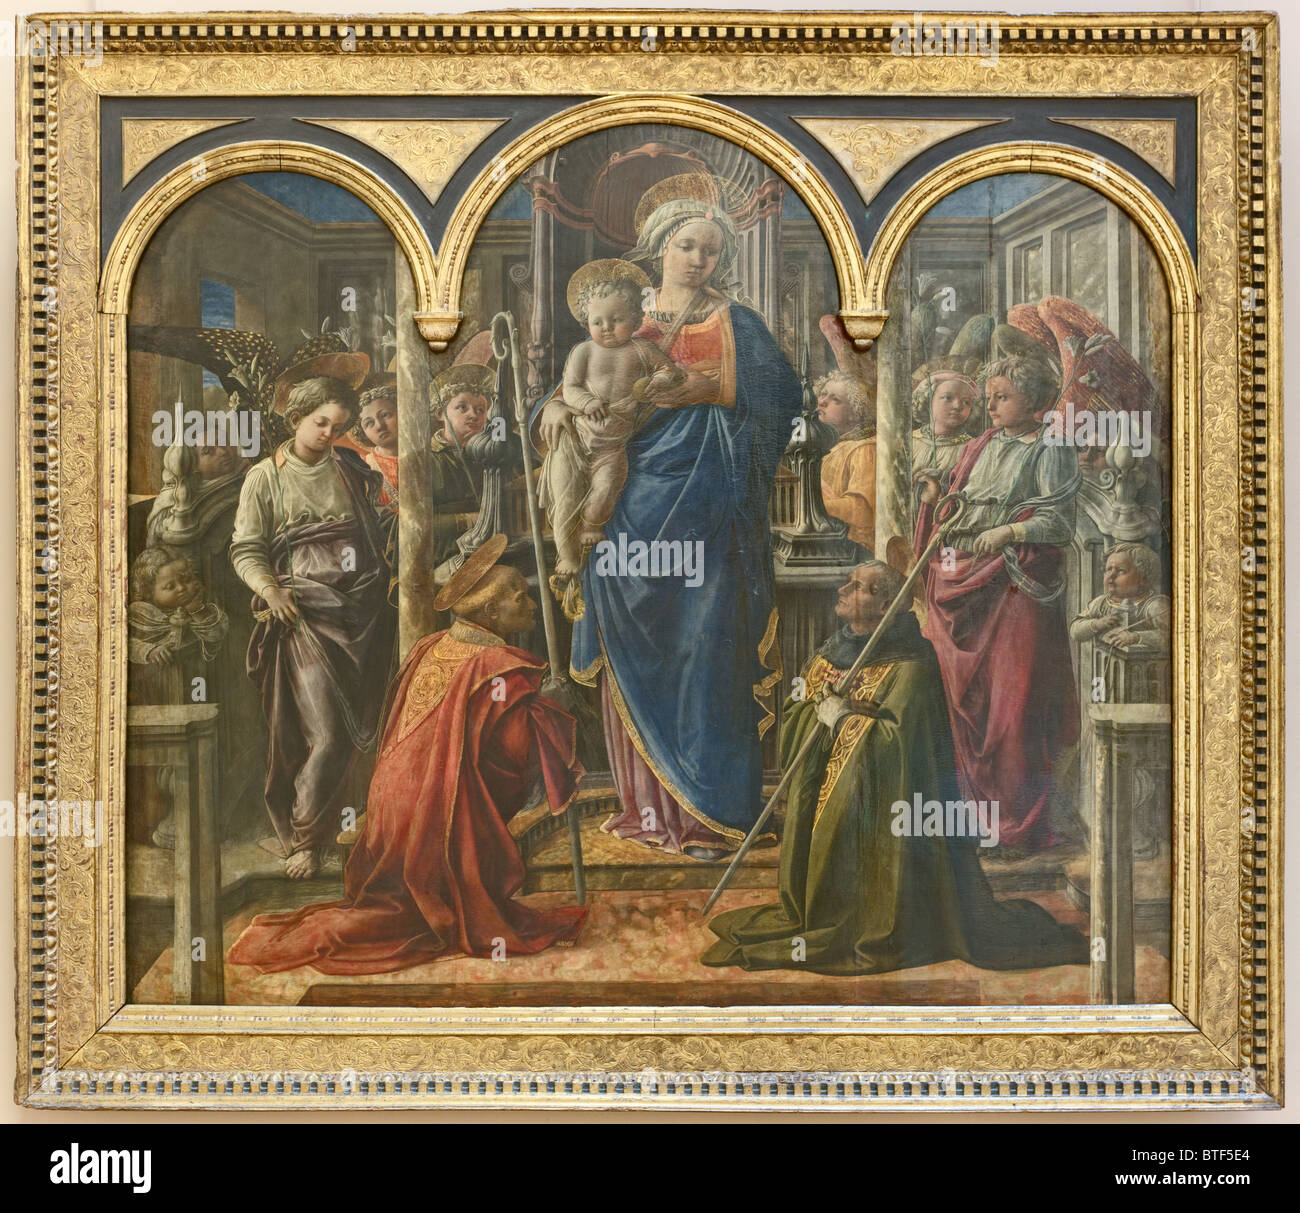 Virgin and Child with Saints Frediano and Augustine, known as the Barbadori Altarpiece, painting by Filippo LIPPI, Stock Photo